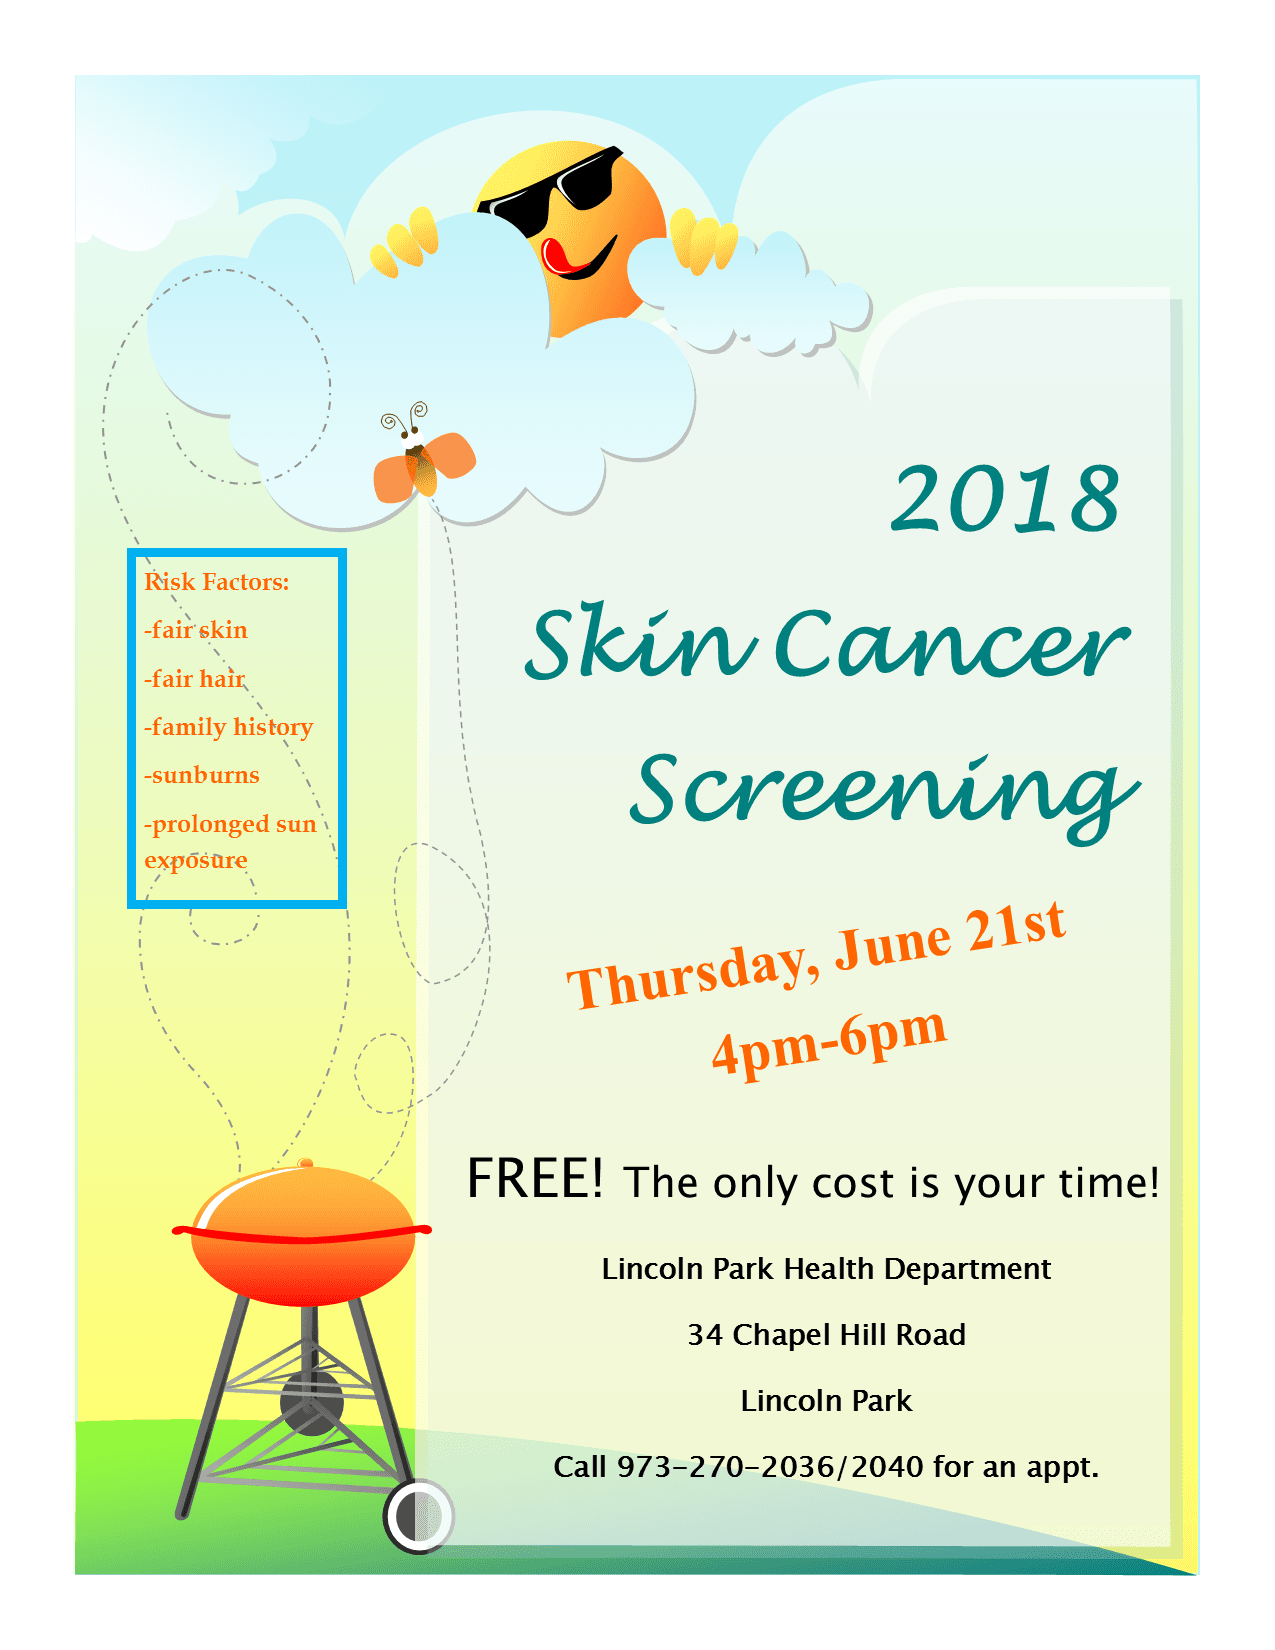 Skin Cancer Screening 2018